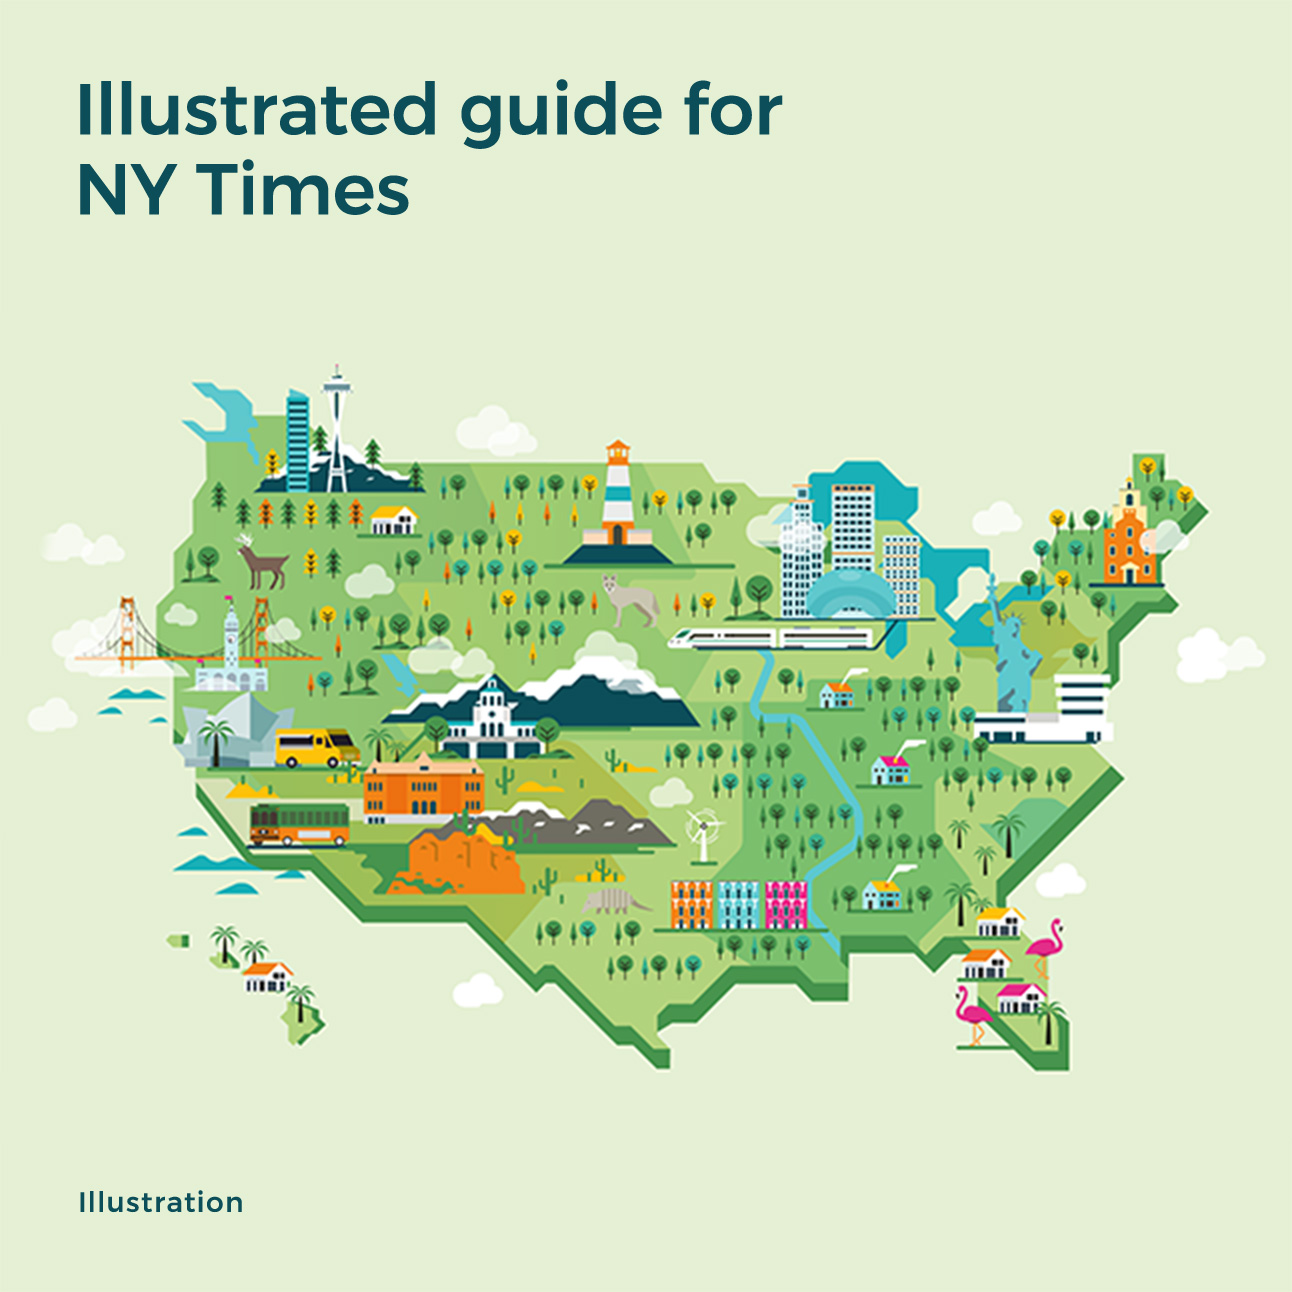 Illustrated guide for NY Times